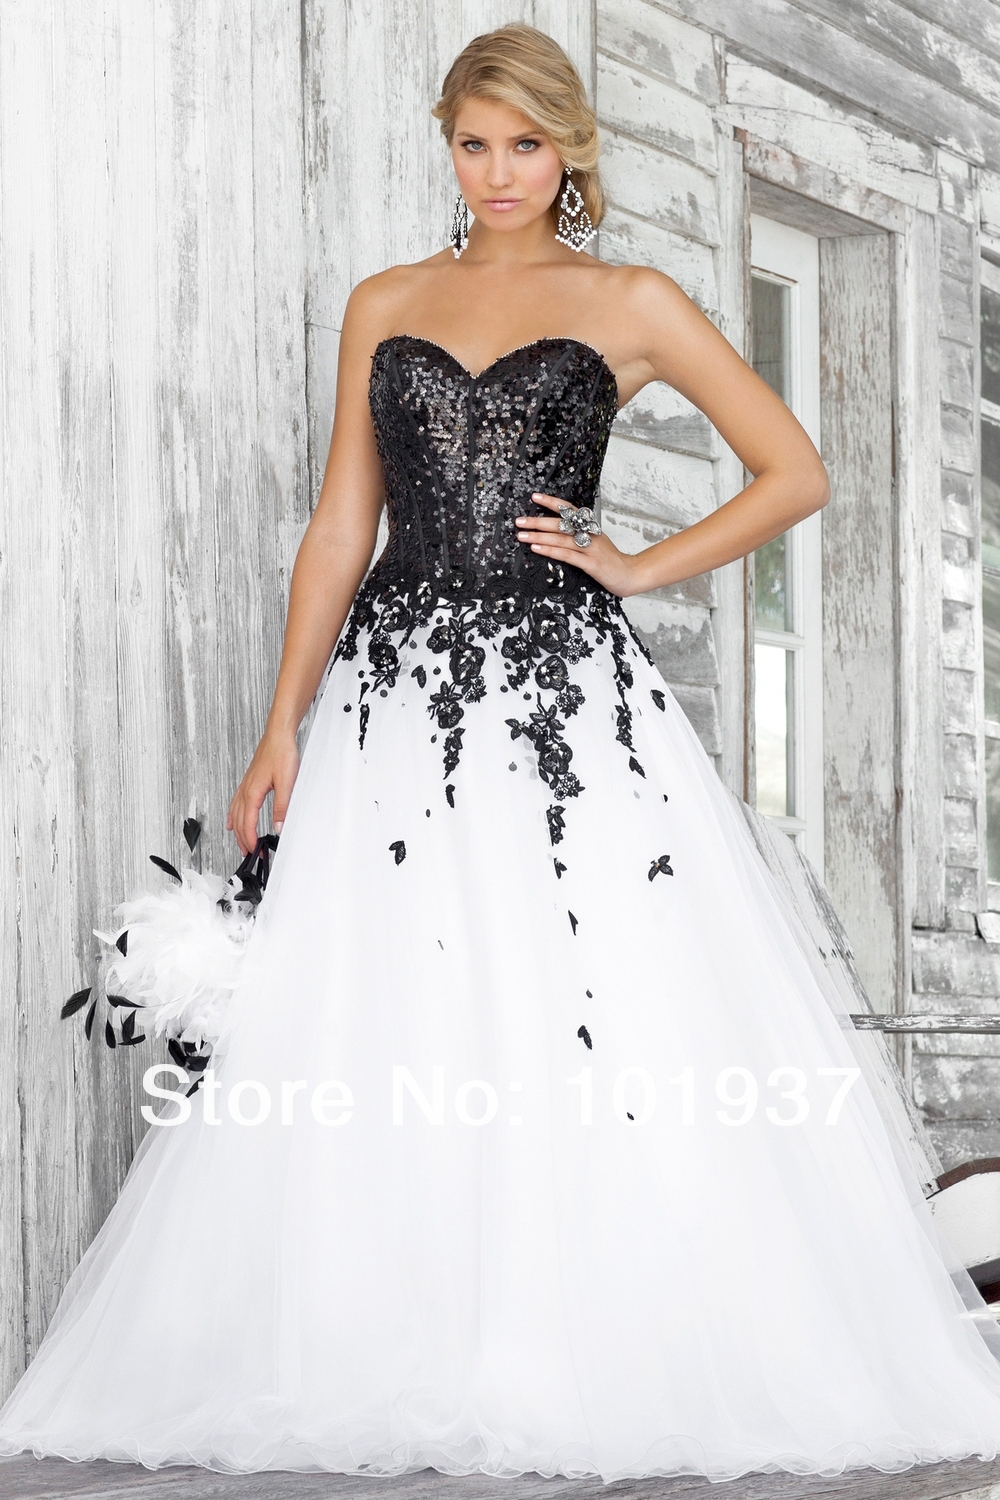 Compare Prices on Prom Dress Corset Ball Gown- Online Shopping/Buy ...